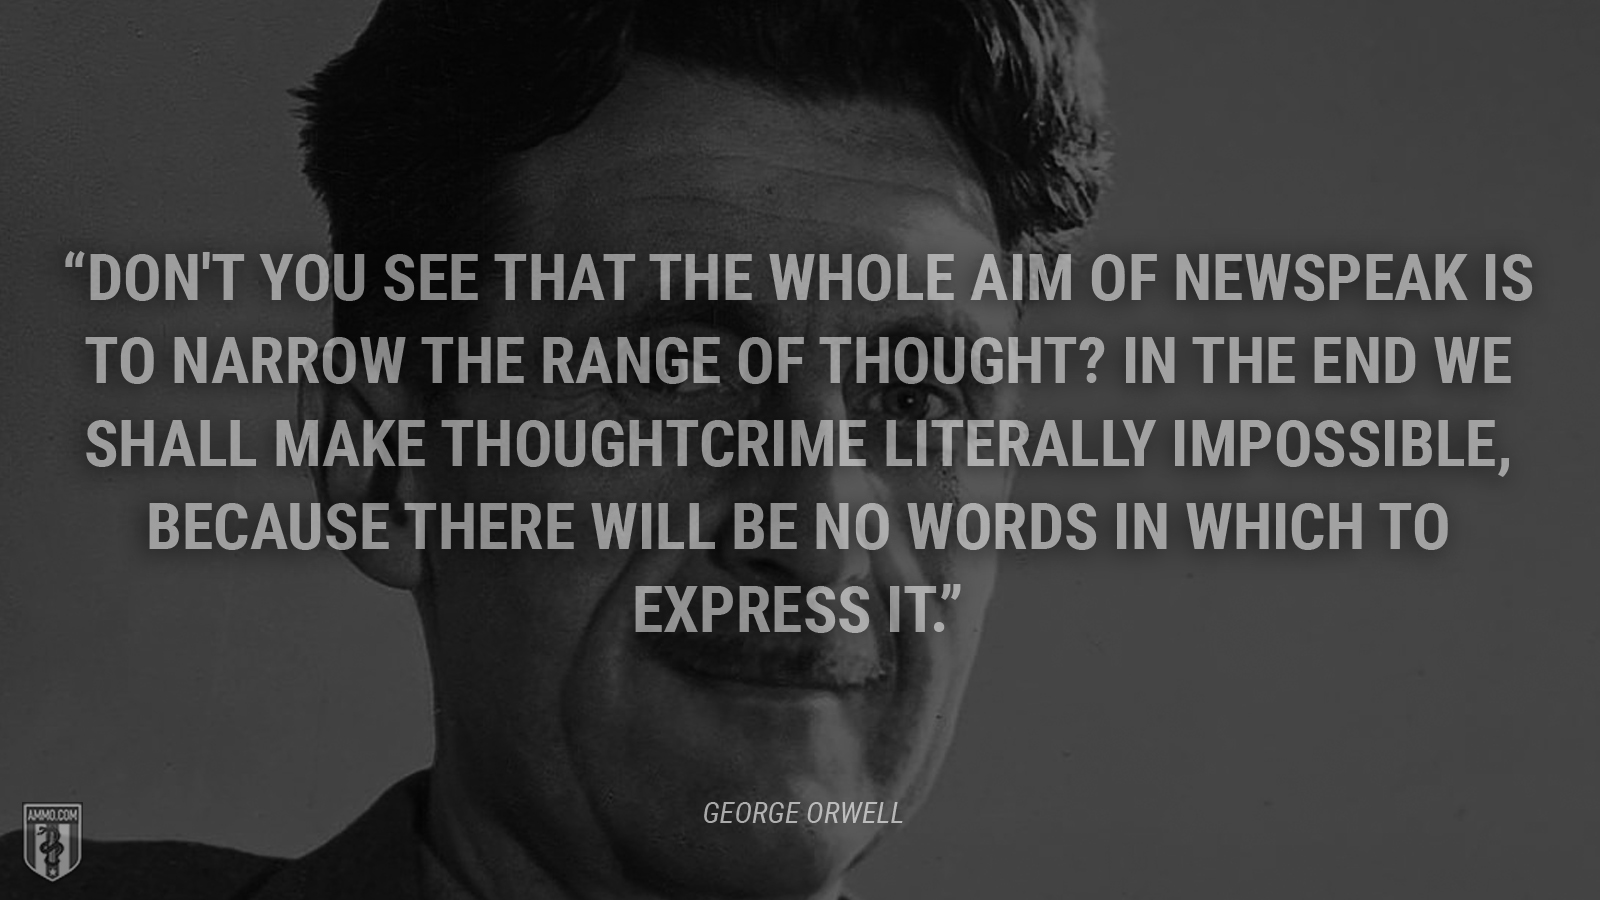 """Don't you see that the whole aim of Newspeak is to narrow the range of thought? In the end we shall make thoughtcrime literally impossible, because there will be no words in which to express it."" - George Orwell"